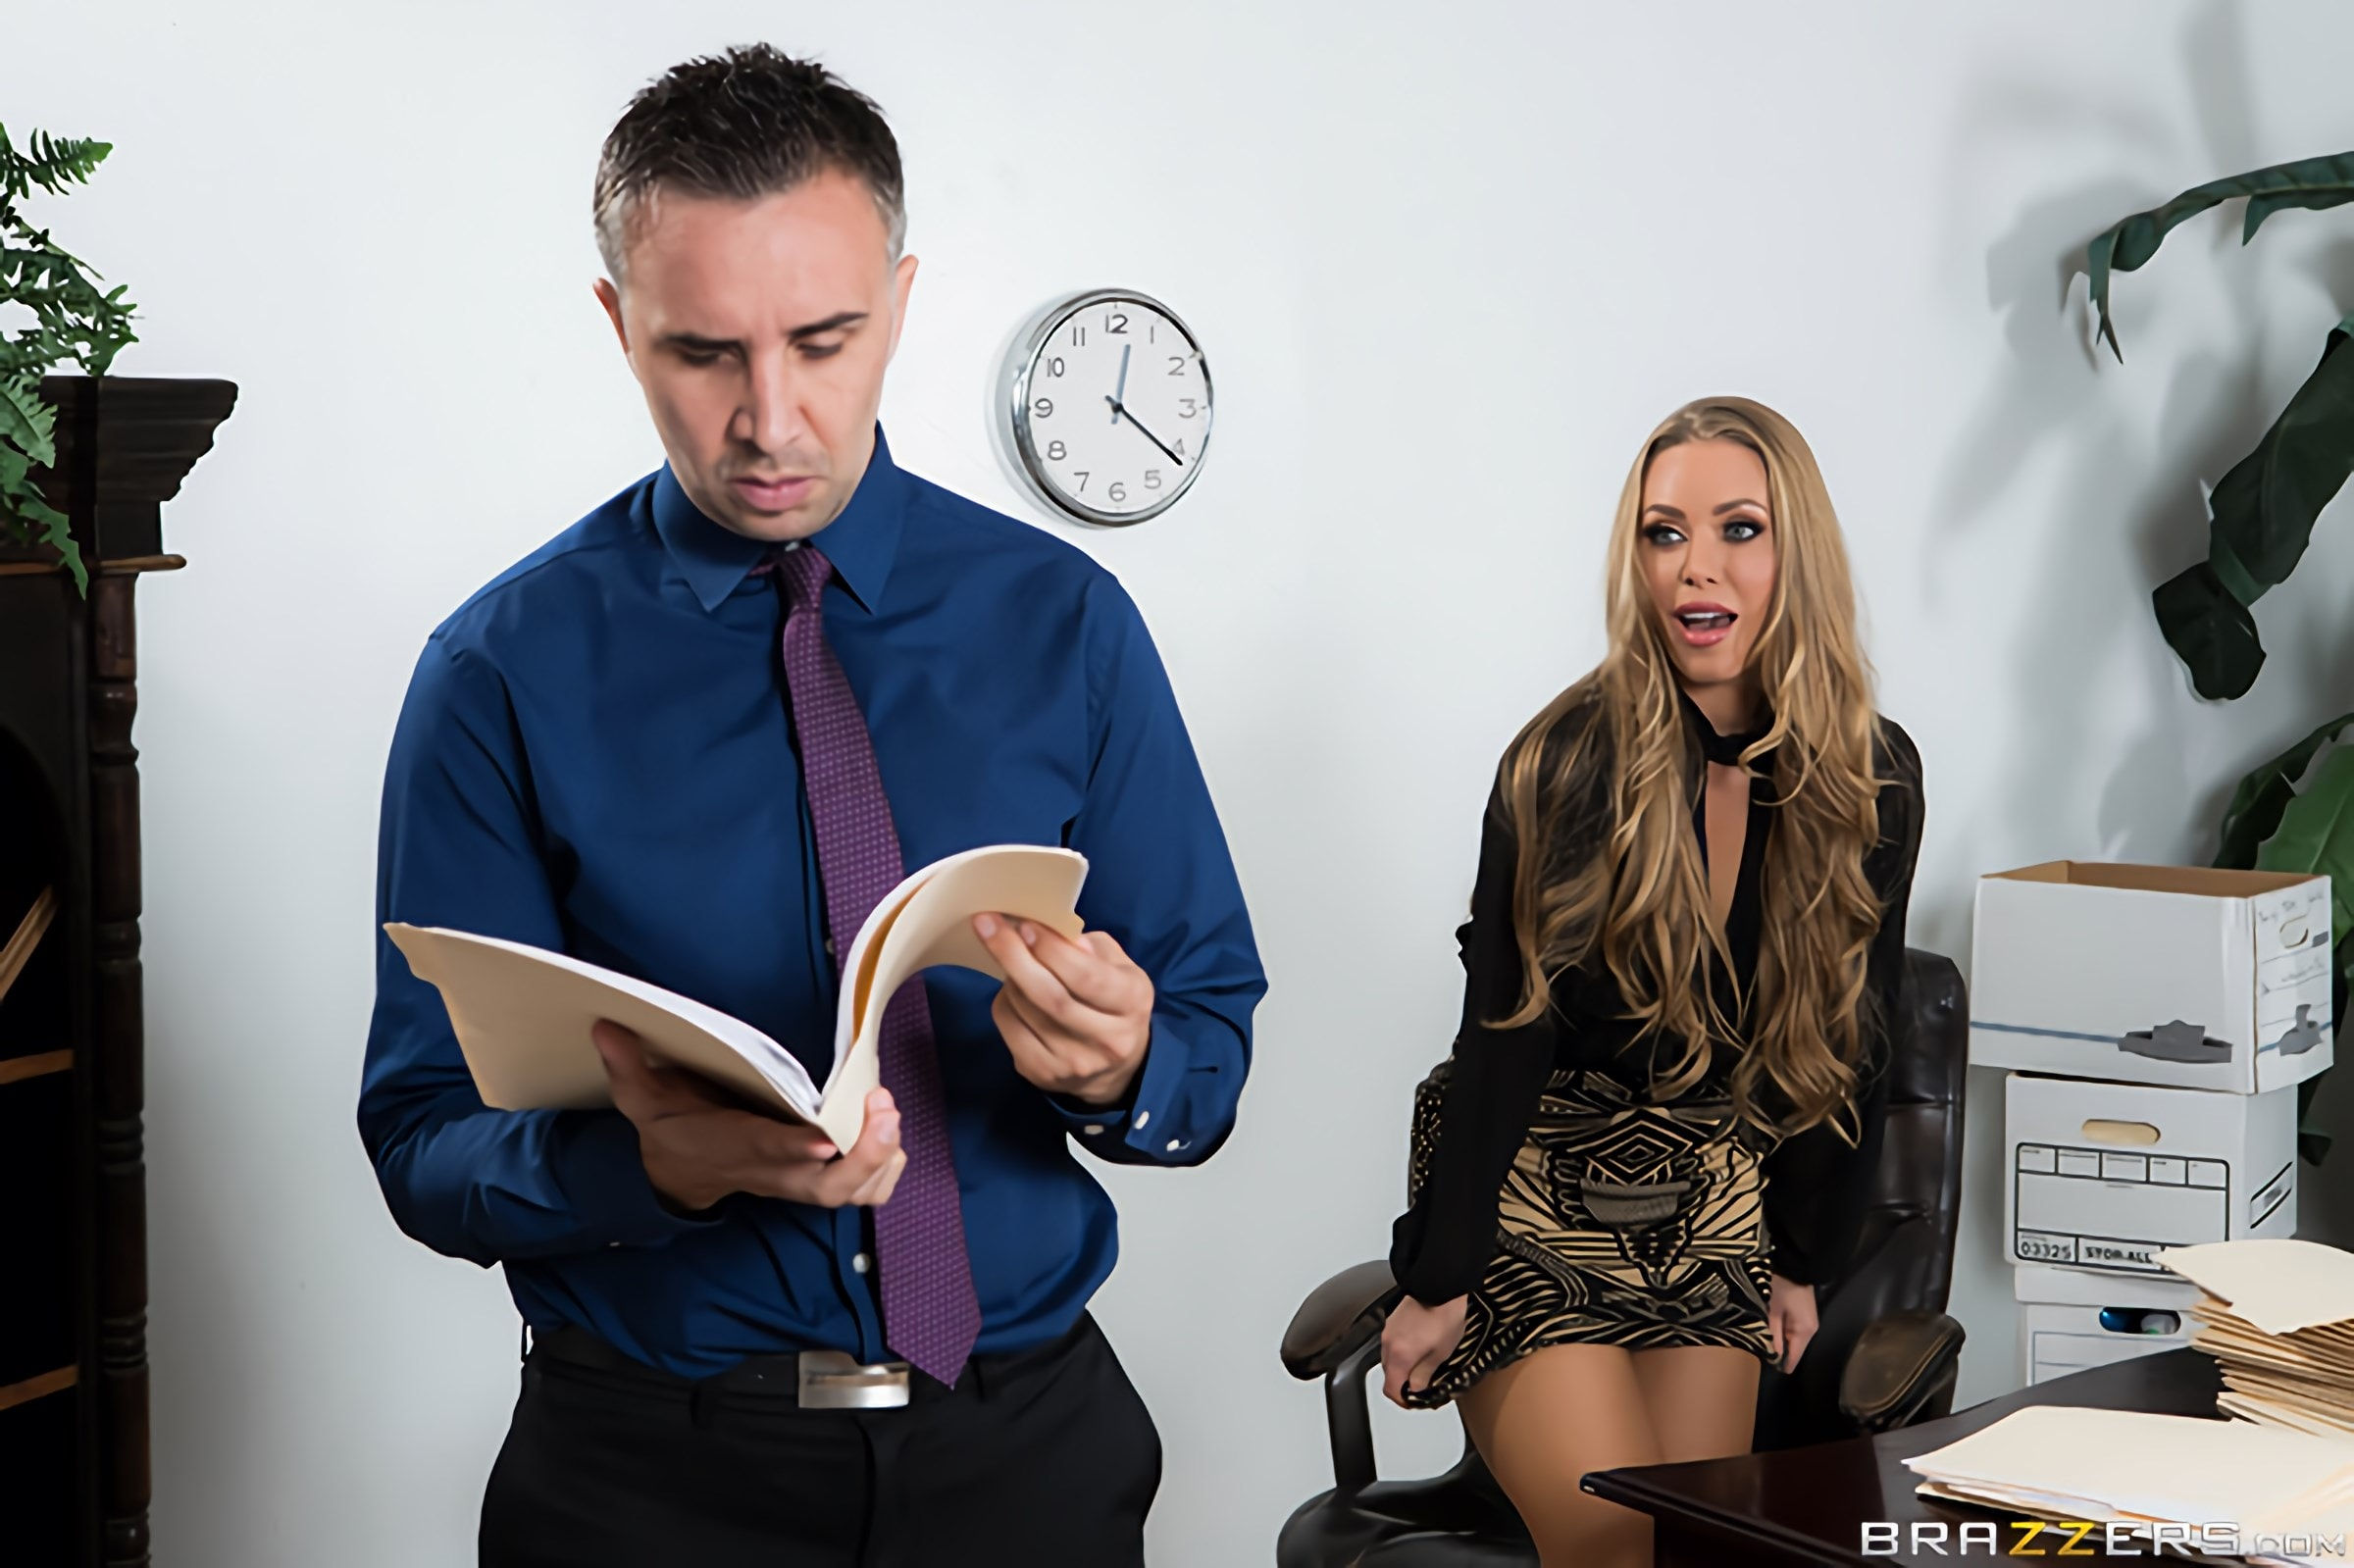 Brazzers 'Team Player' starring Nicole Aniston (Photo 1)